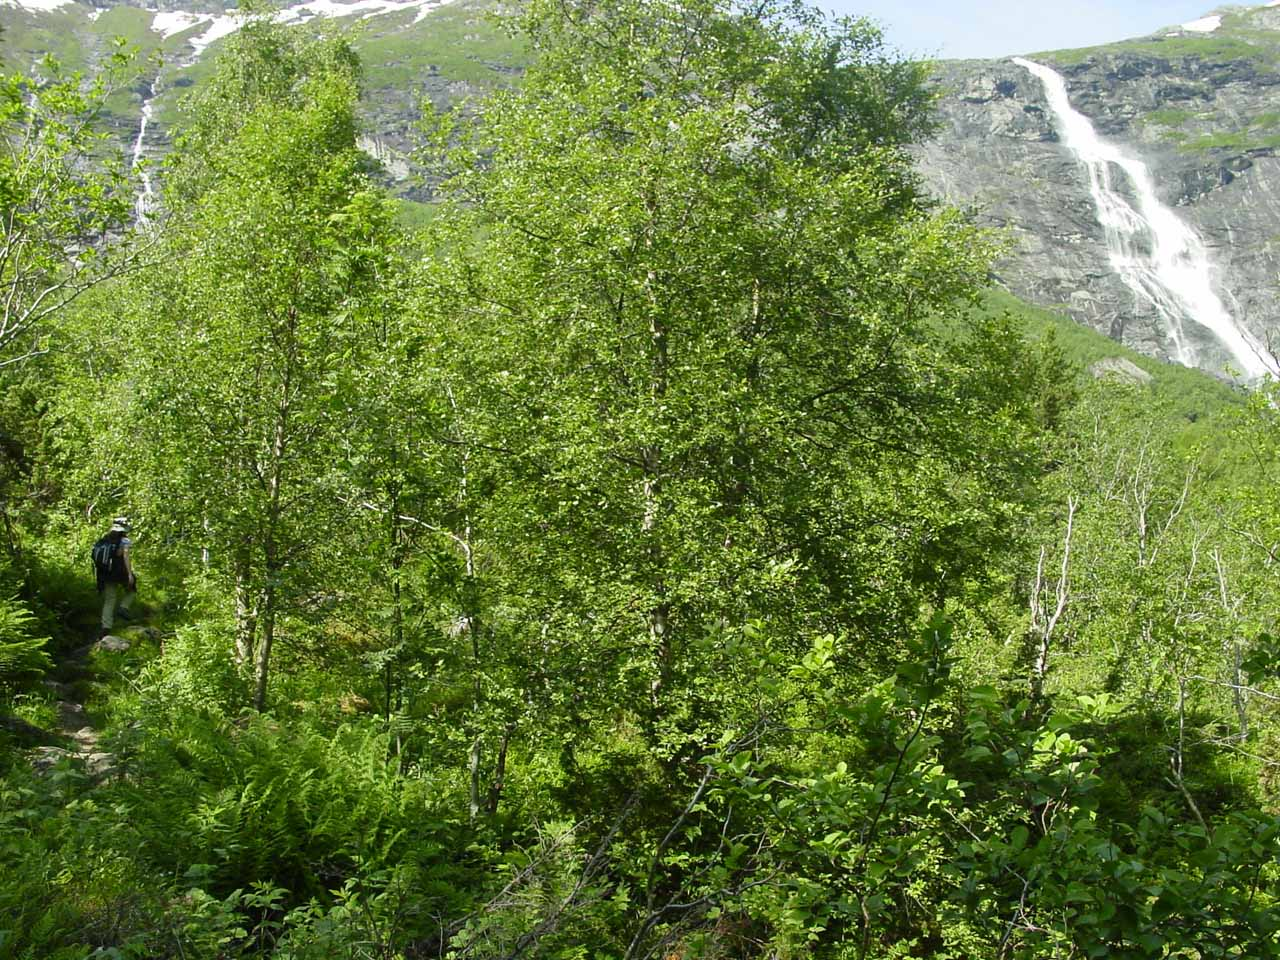 Julie and I started to notice this other waterfall on the Mardalsfossen trail, which we think was on the Ytste Mardøla watercourse